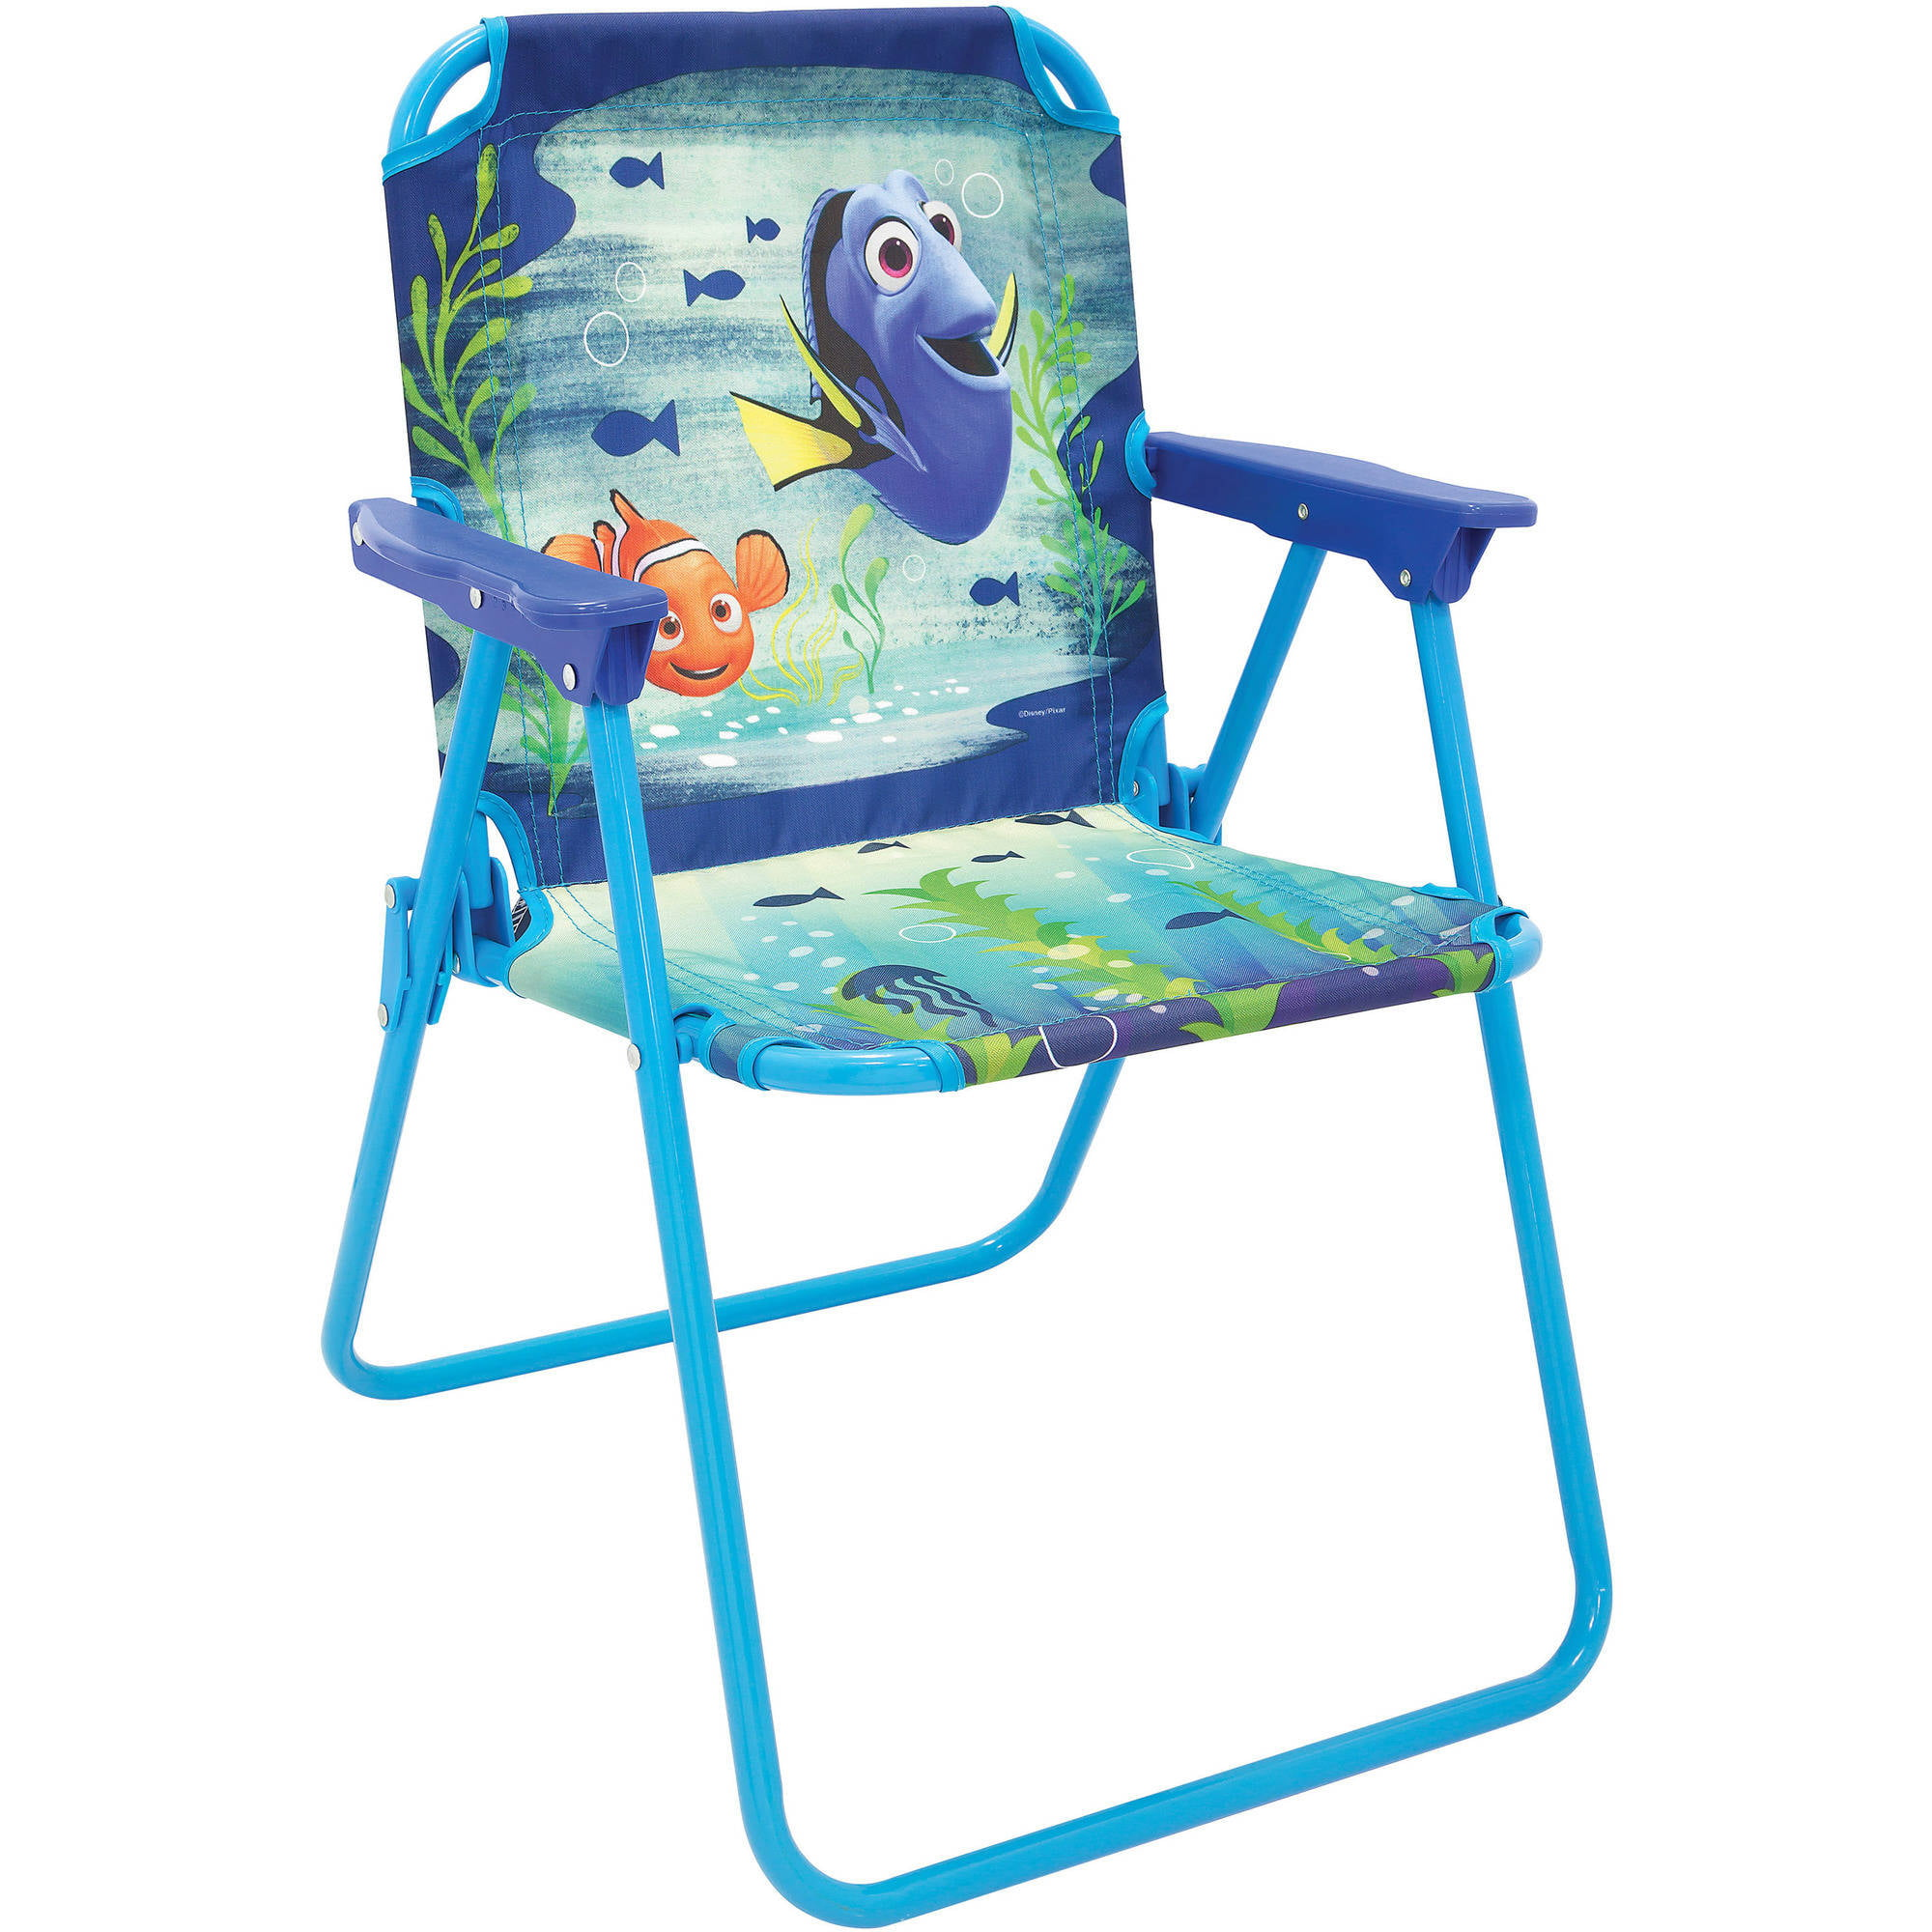 p chair furniture wid playhouses qlt toys disney kids s patio outdoor games prod only frozen resin hei by